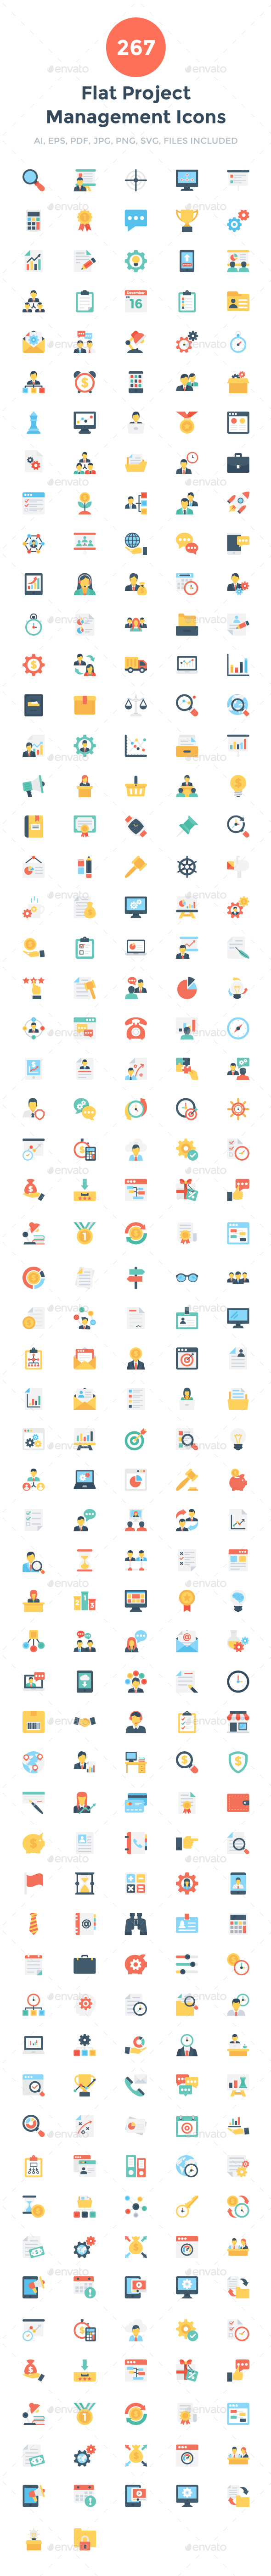 267 Flat Project Management Icons - Icons